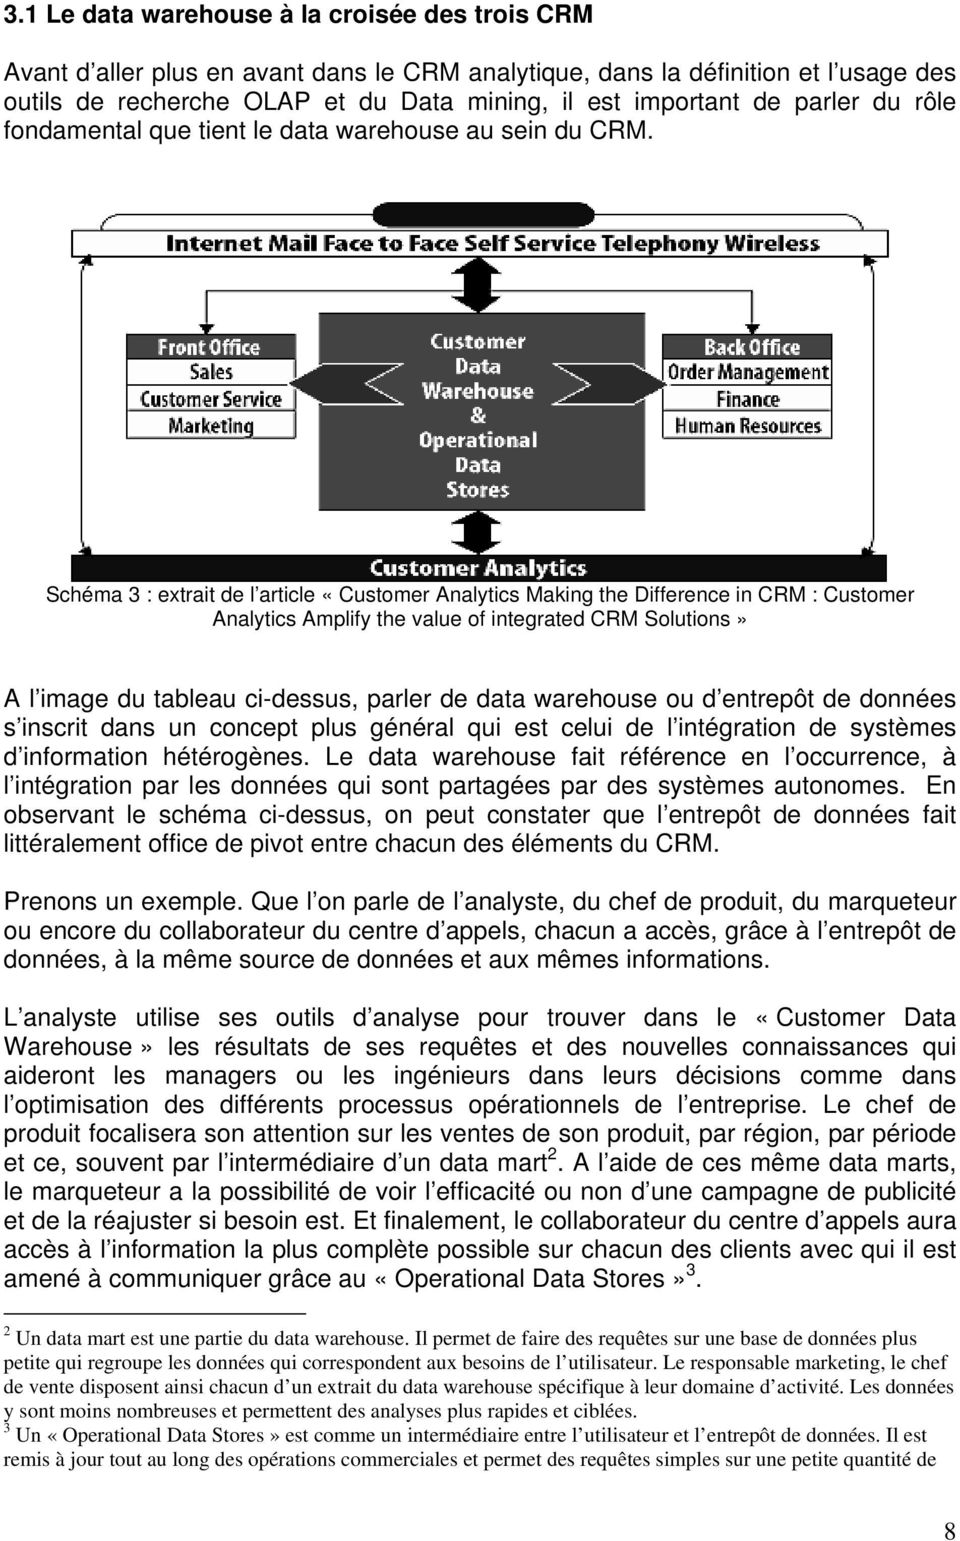 Schéma 3 : extrait de l article «Customer Analytics Making the Difference in CRM : Customer Analytics Amplify the value of integrated CRM Solutions» A l image du tableau ci-dessus, parler de data